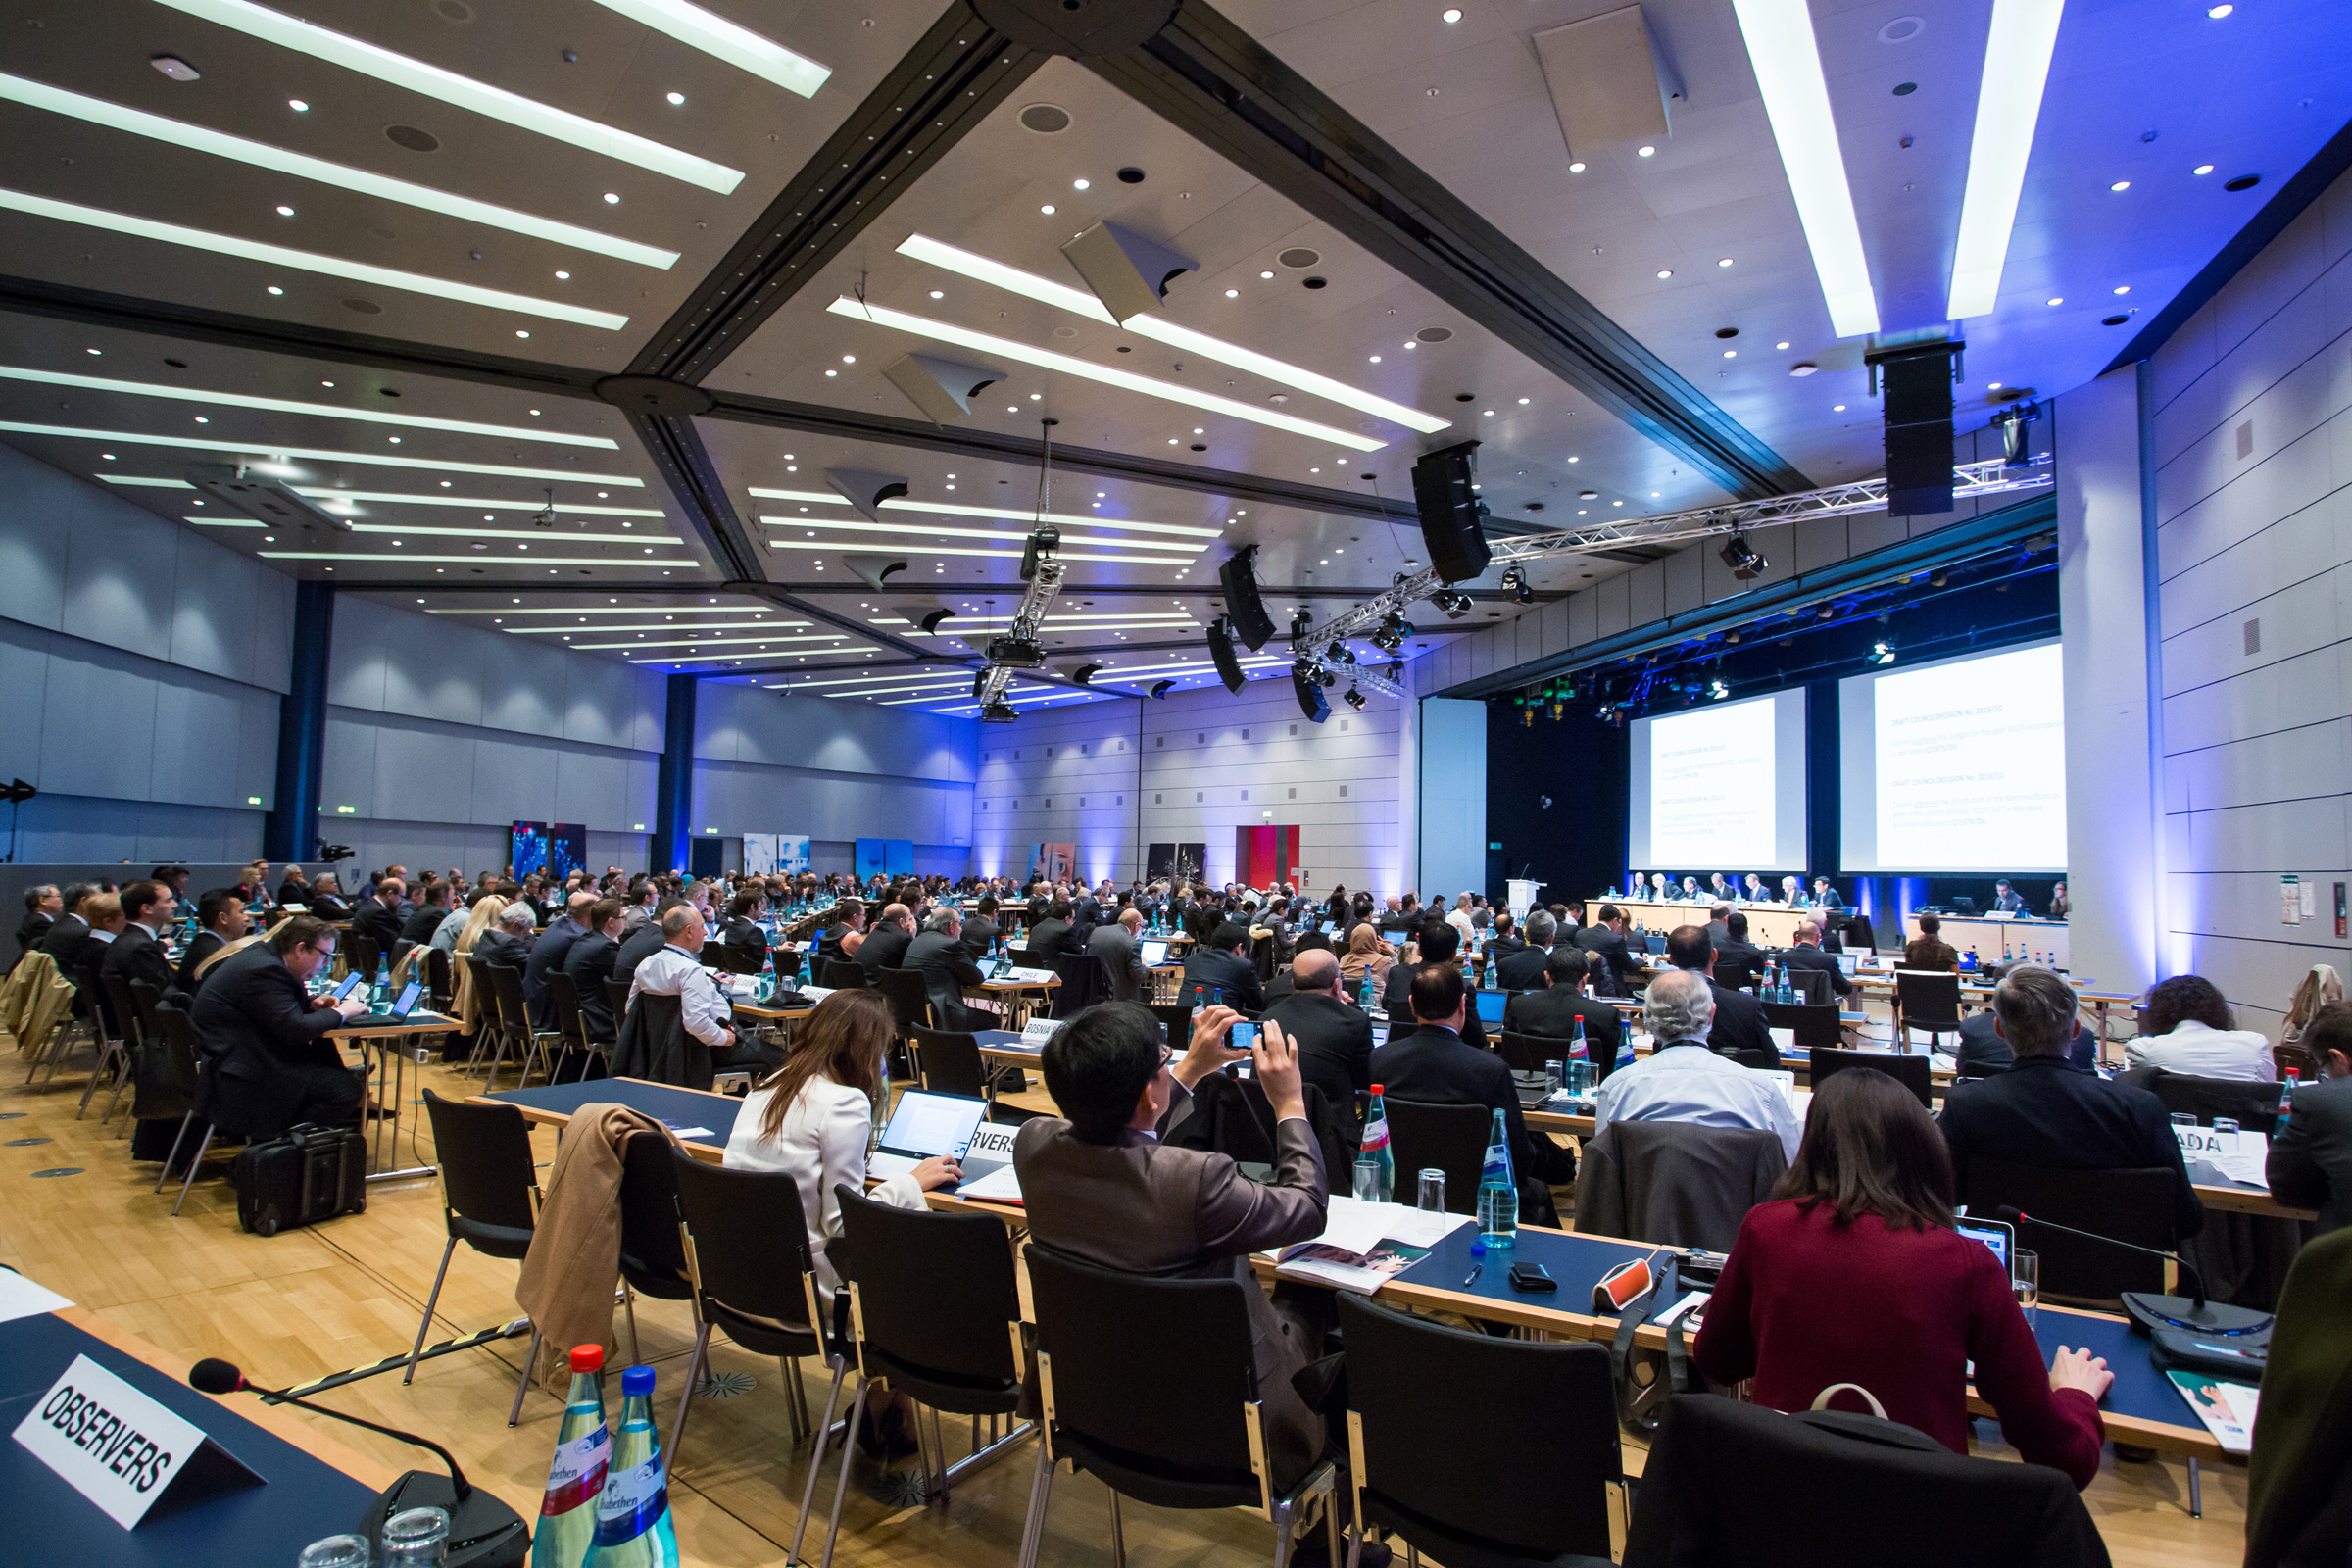 event-photography_congress-annual_meetings-conferences-frankfurt_19